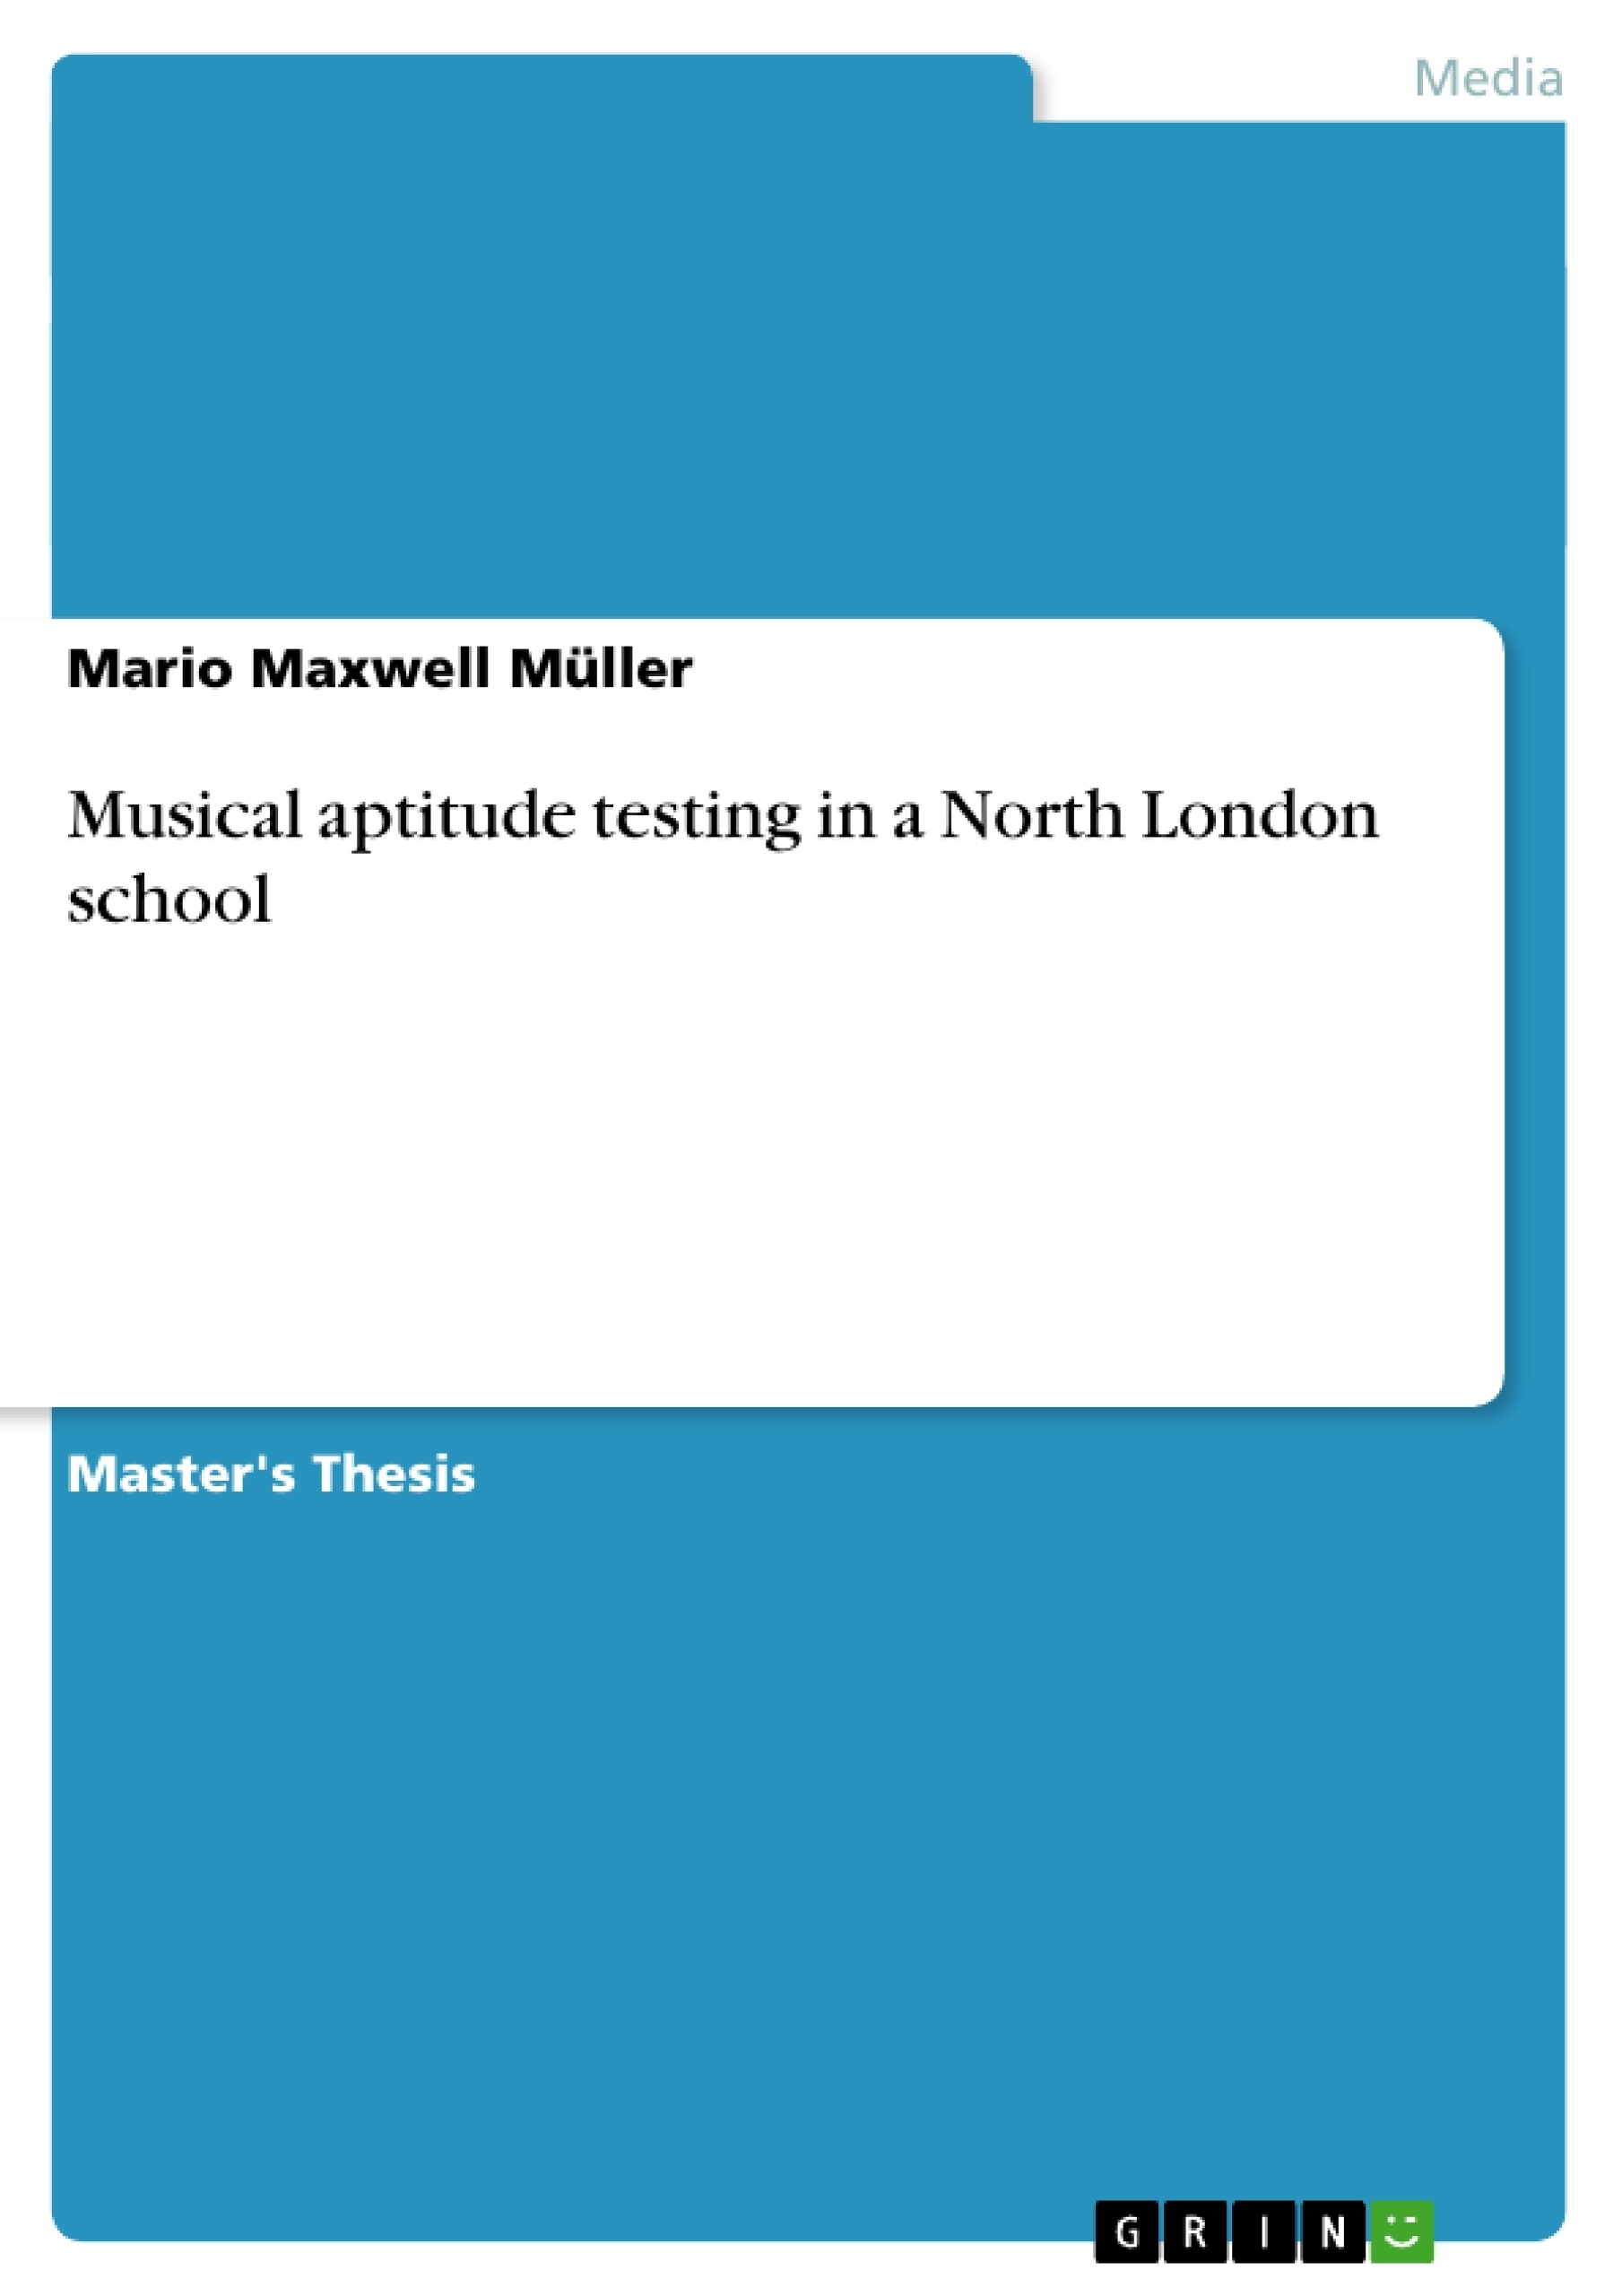 Title: Musical aptitude testing in a North London school